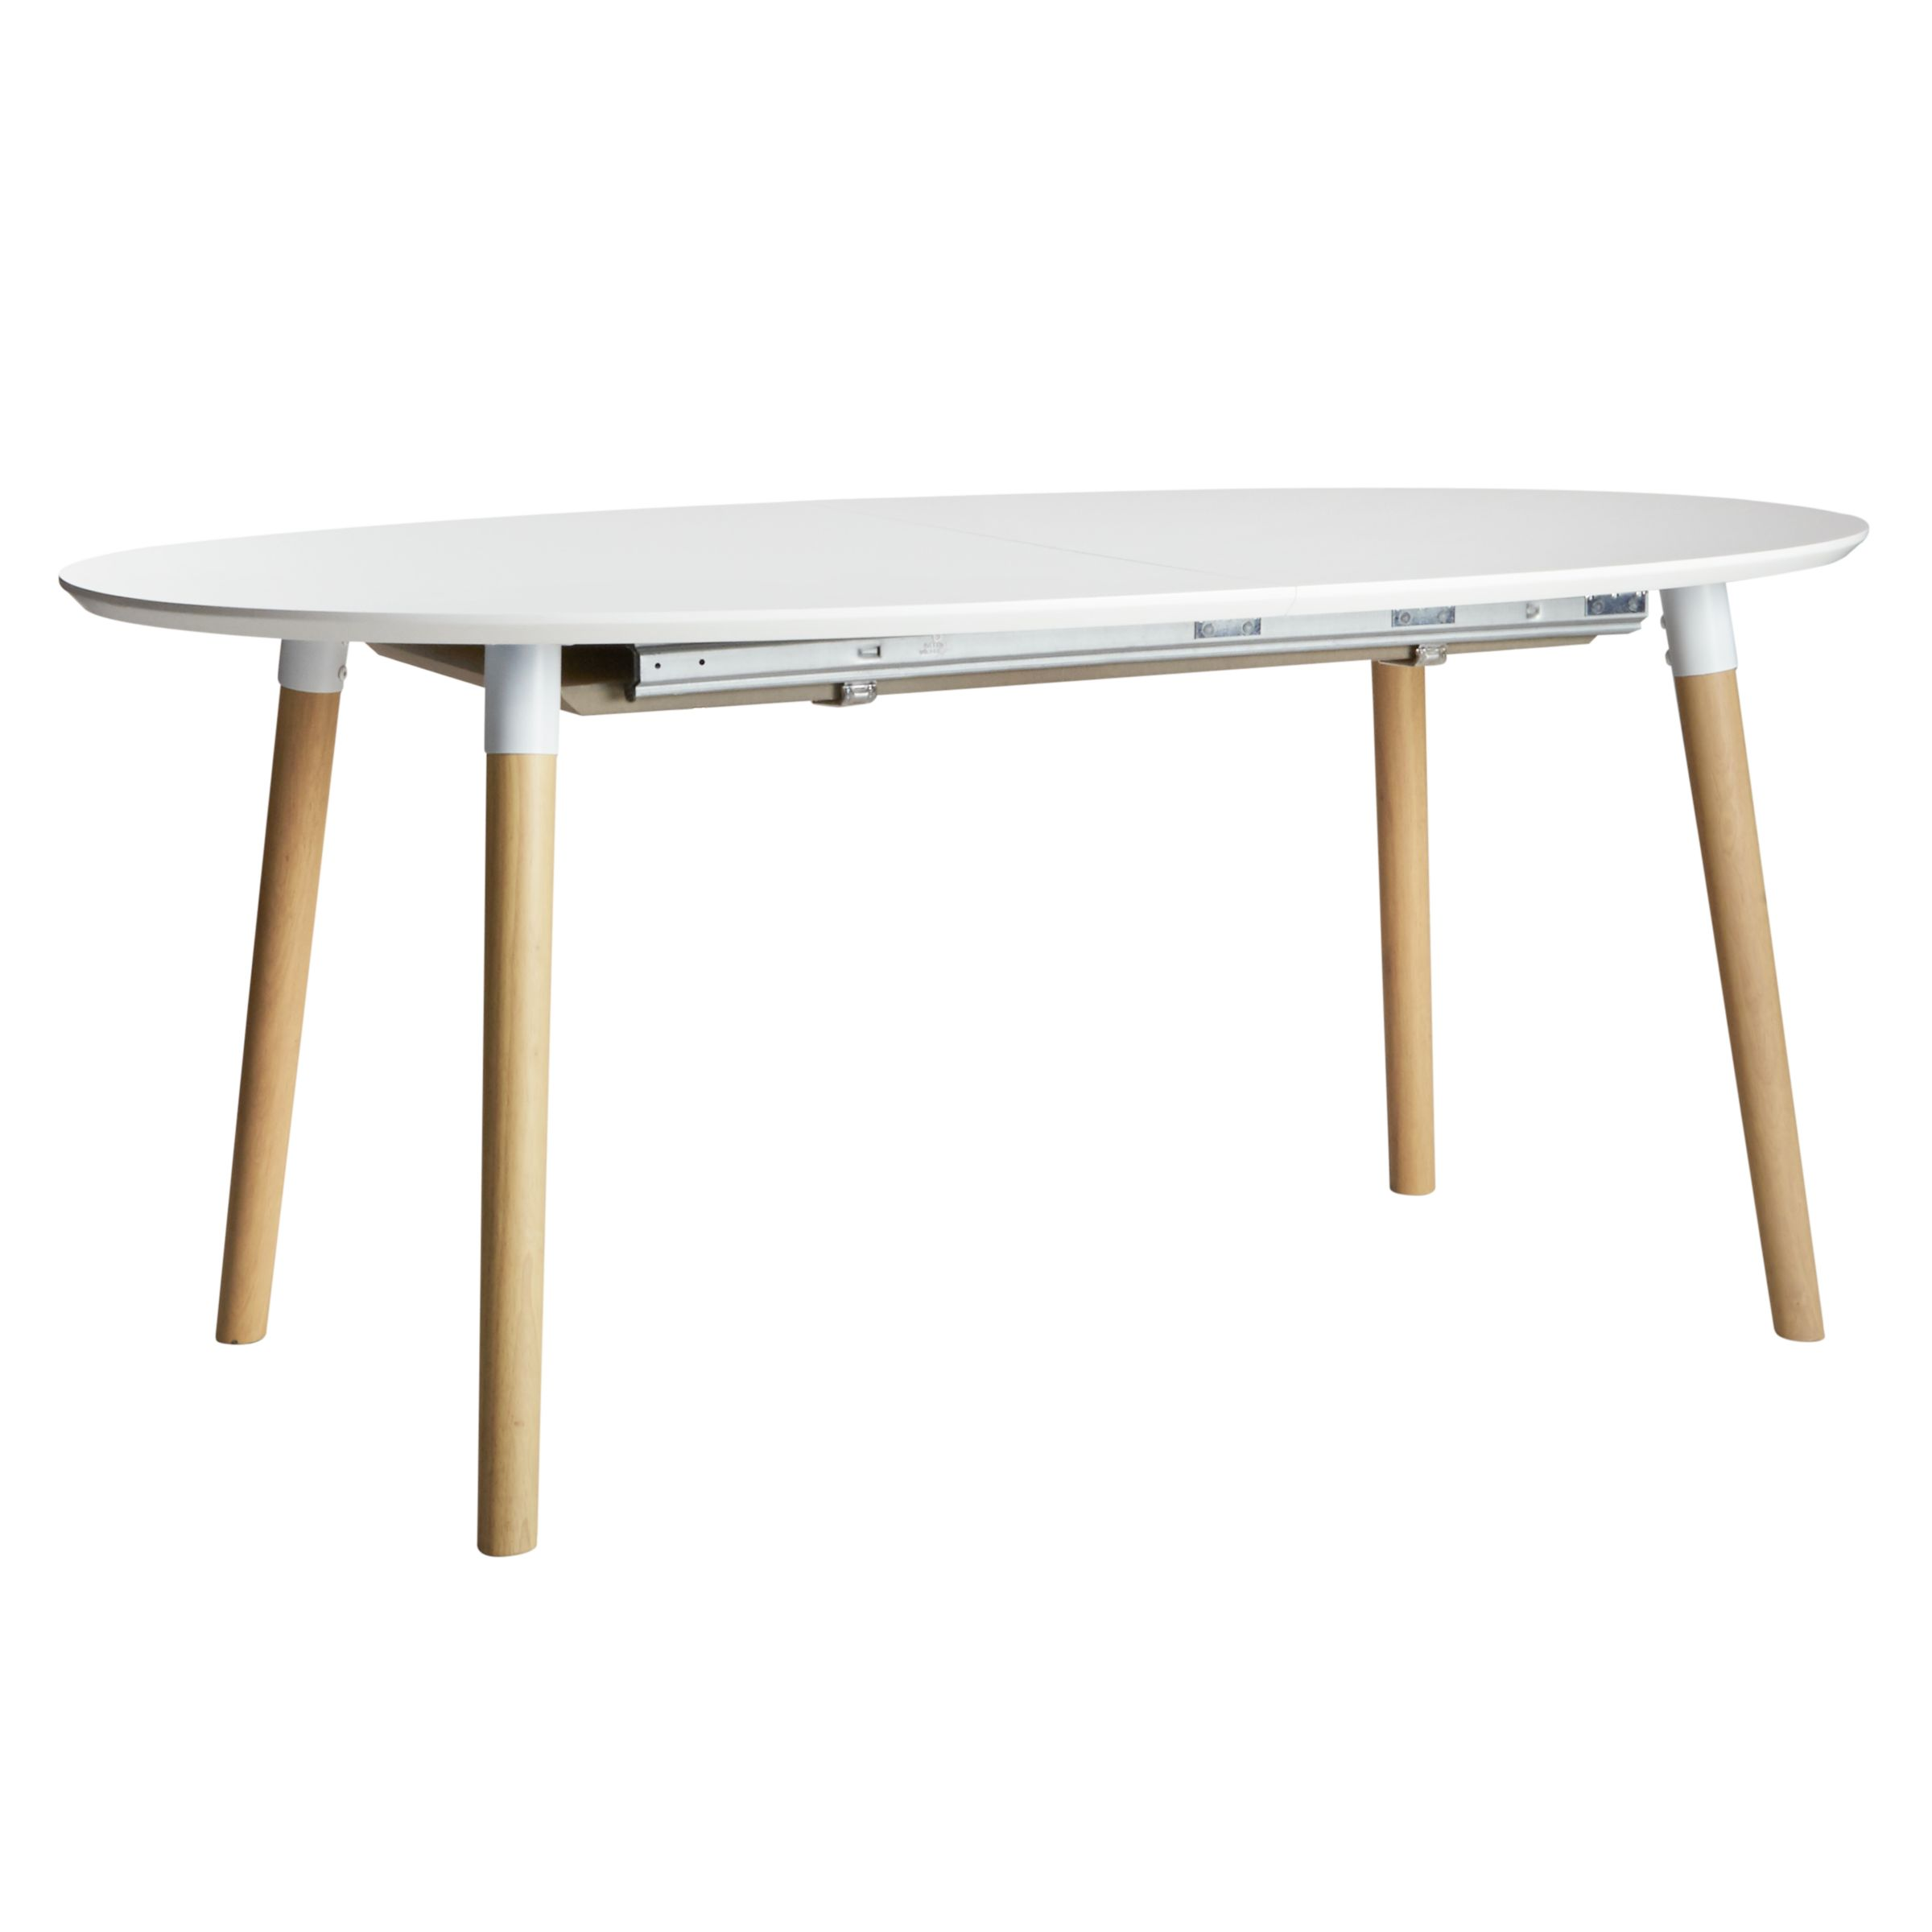 John Lewis Belina 6-8 Seater Extending Dining Table, White